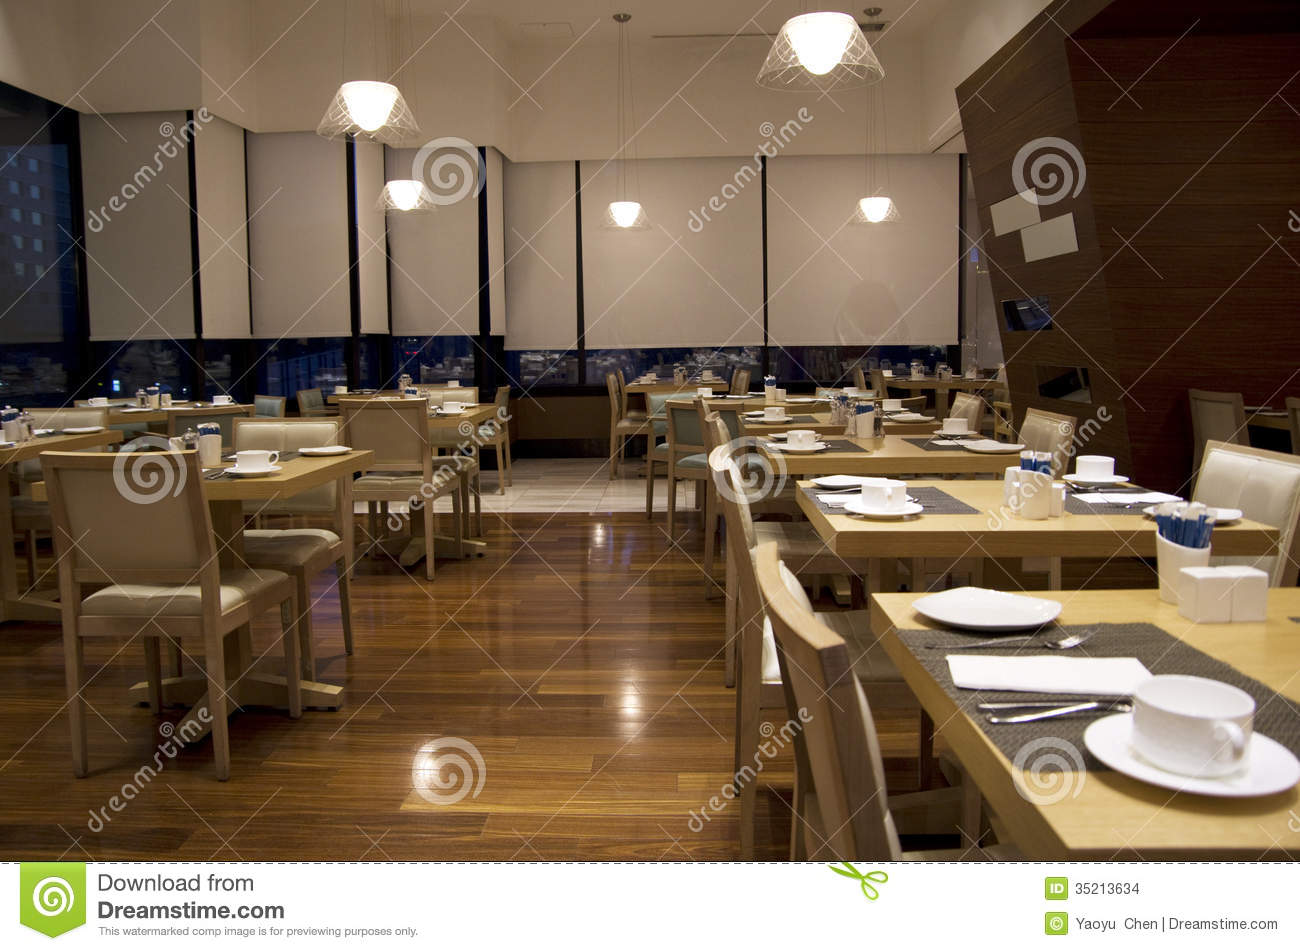 Breakfast buffet restaurant interiors stock photo image